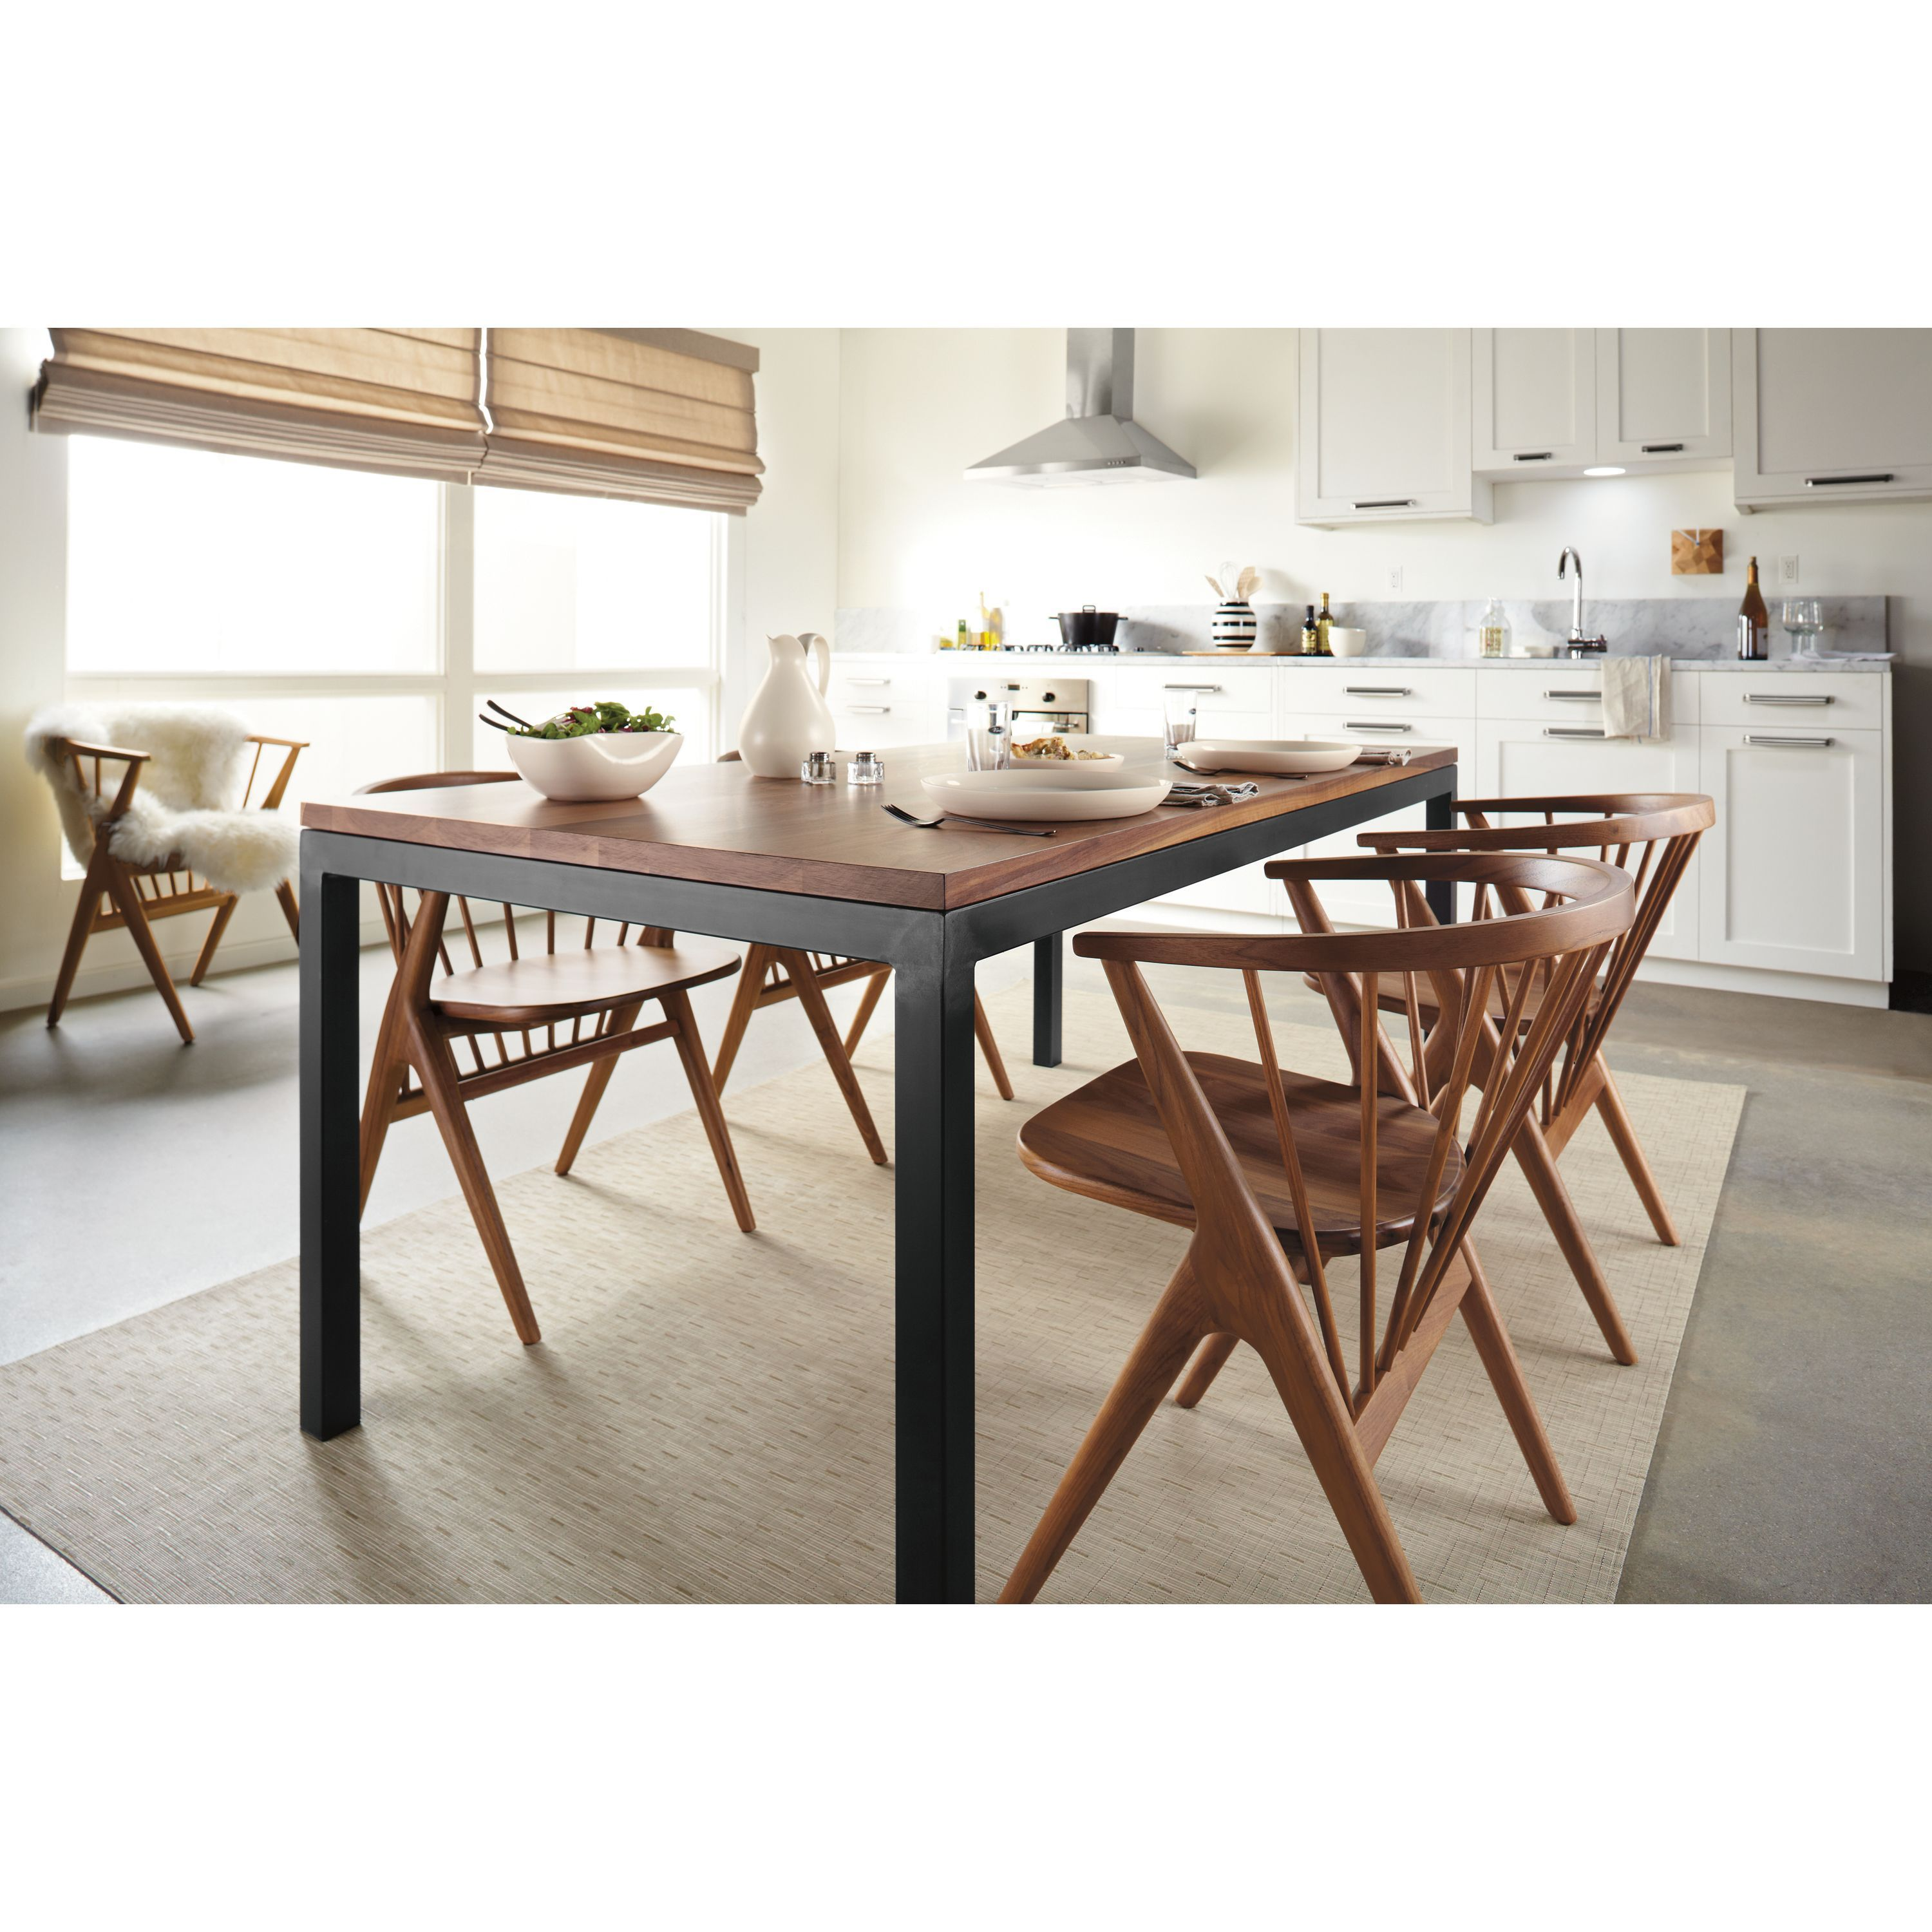 style modern material for scandinavian dining room canvas subjects rh pinterest com